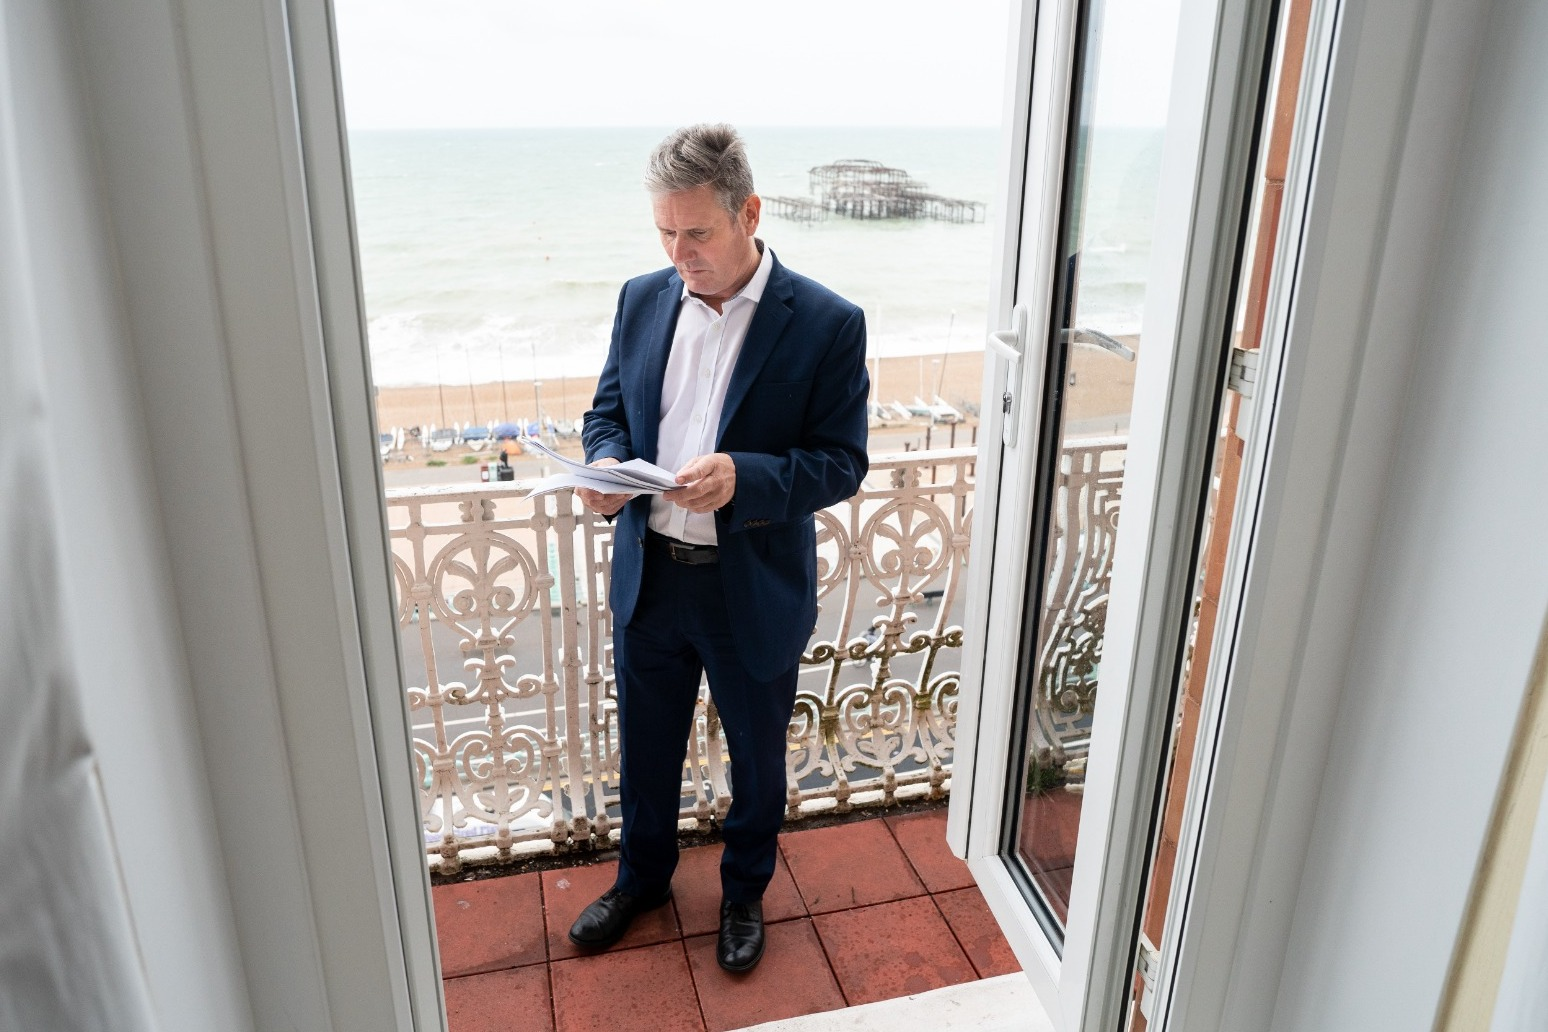 Starmer says winning elections more important than unity amid rift with left